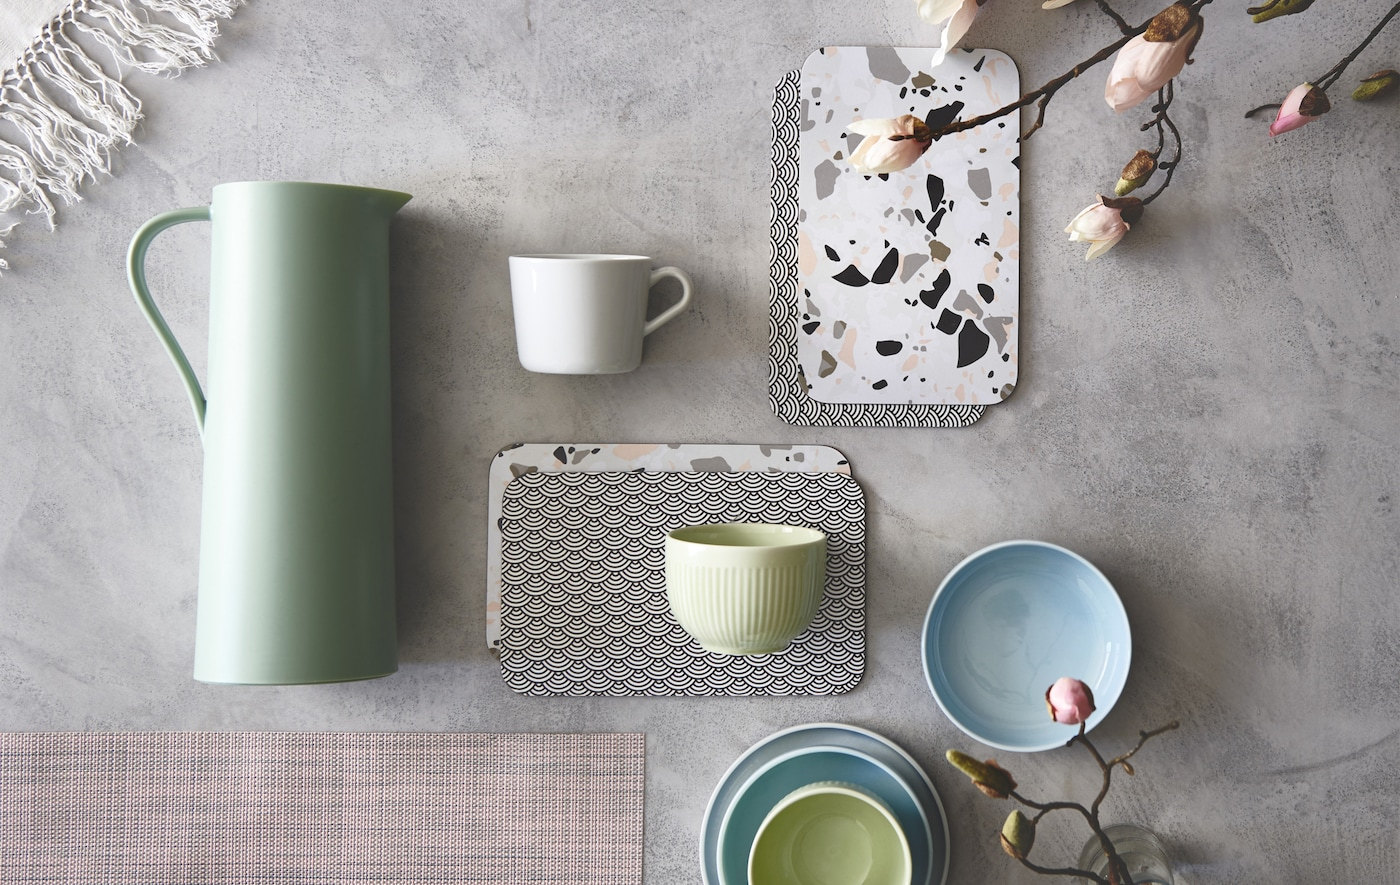 Teacups and trays in pastel colors laid out on concrete.